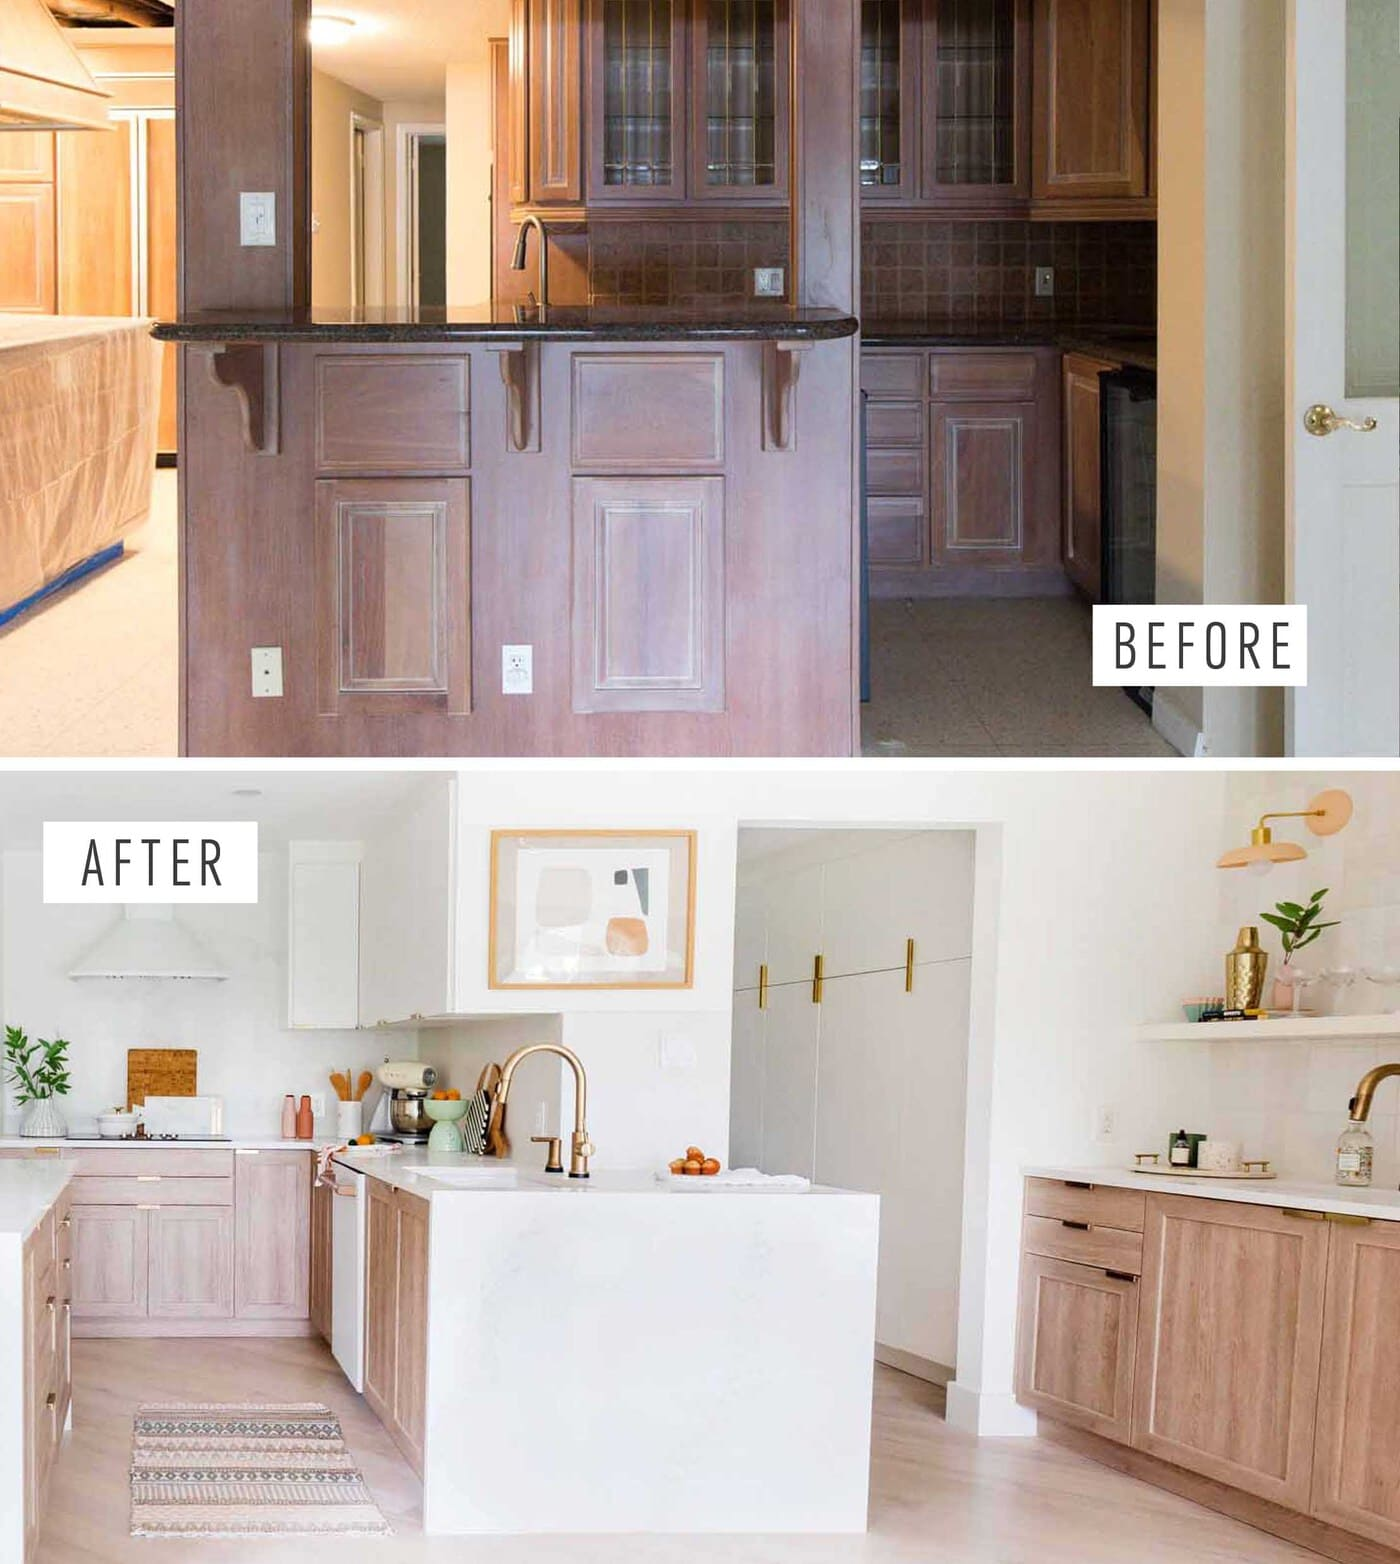 Pleasing Sharing Our Kitchen Before And After Sugar Cloth Best Image Libraries Thycampuscom